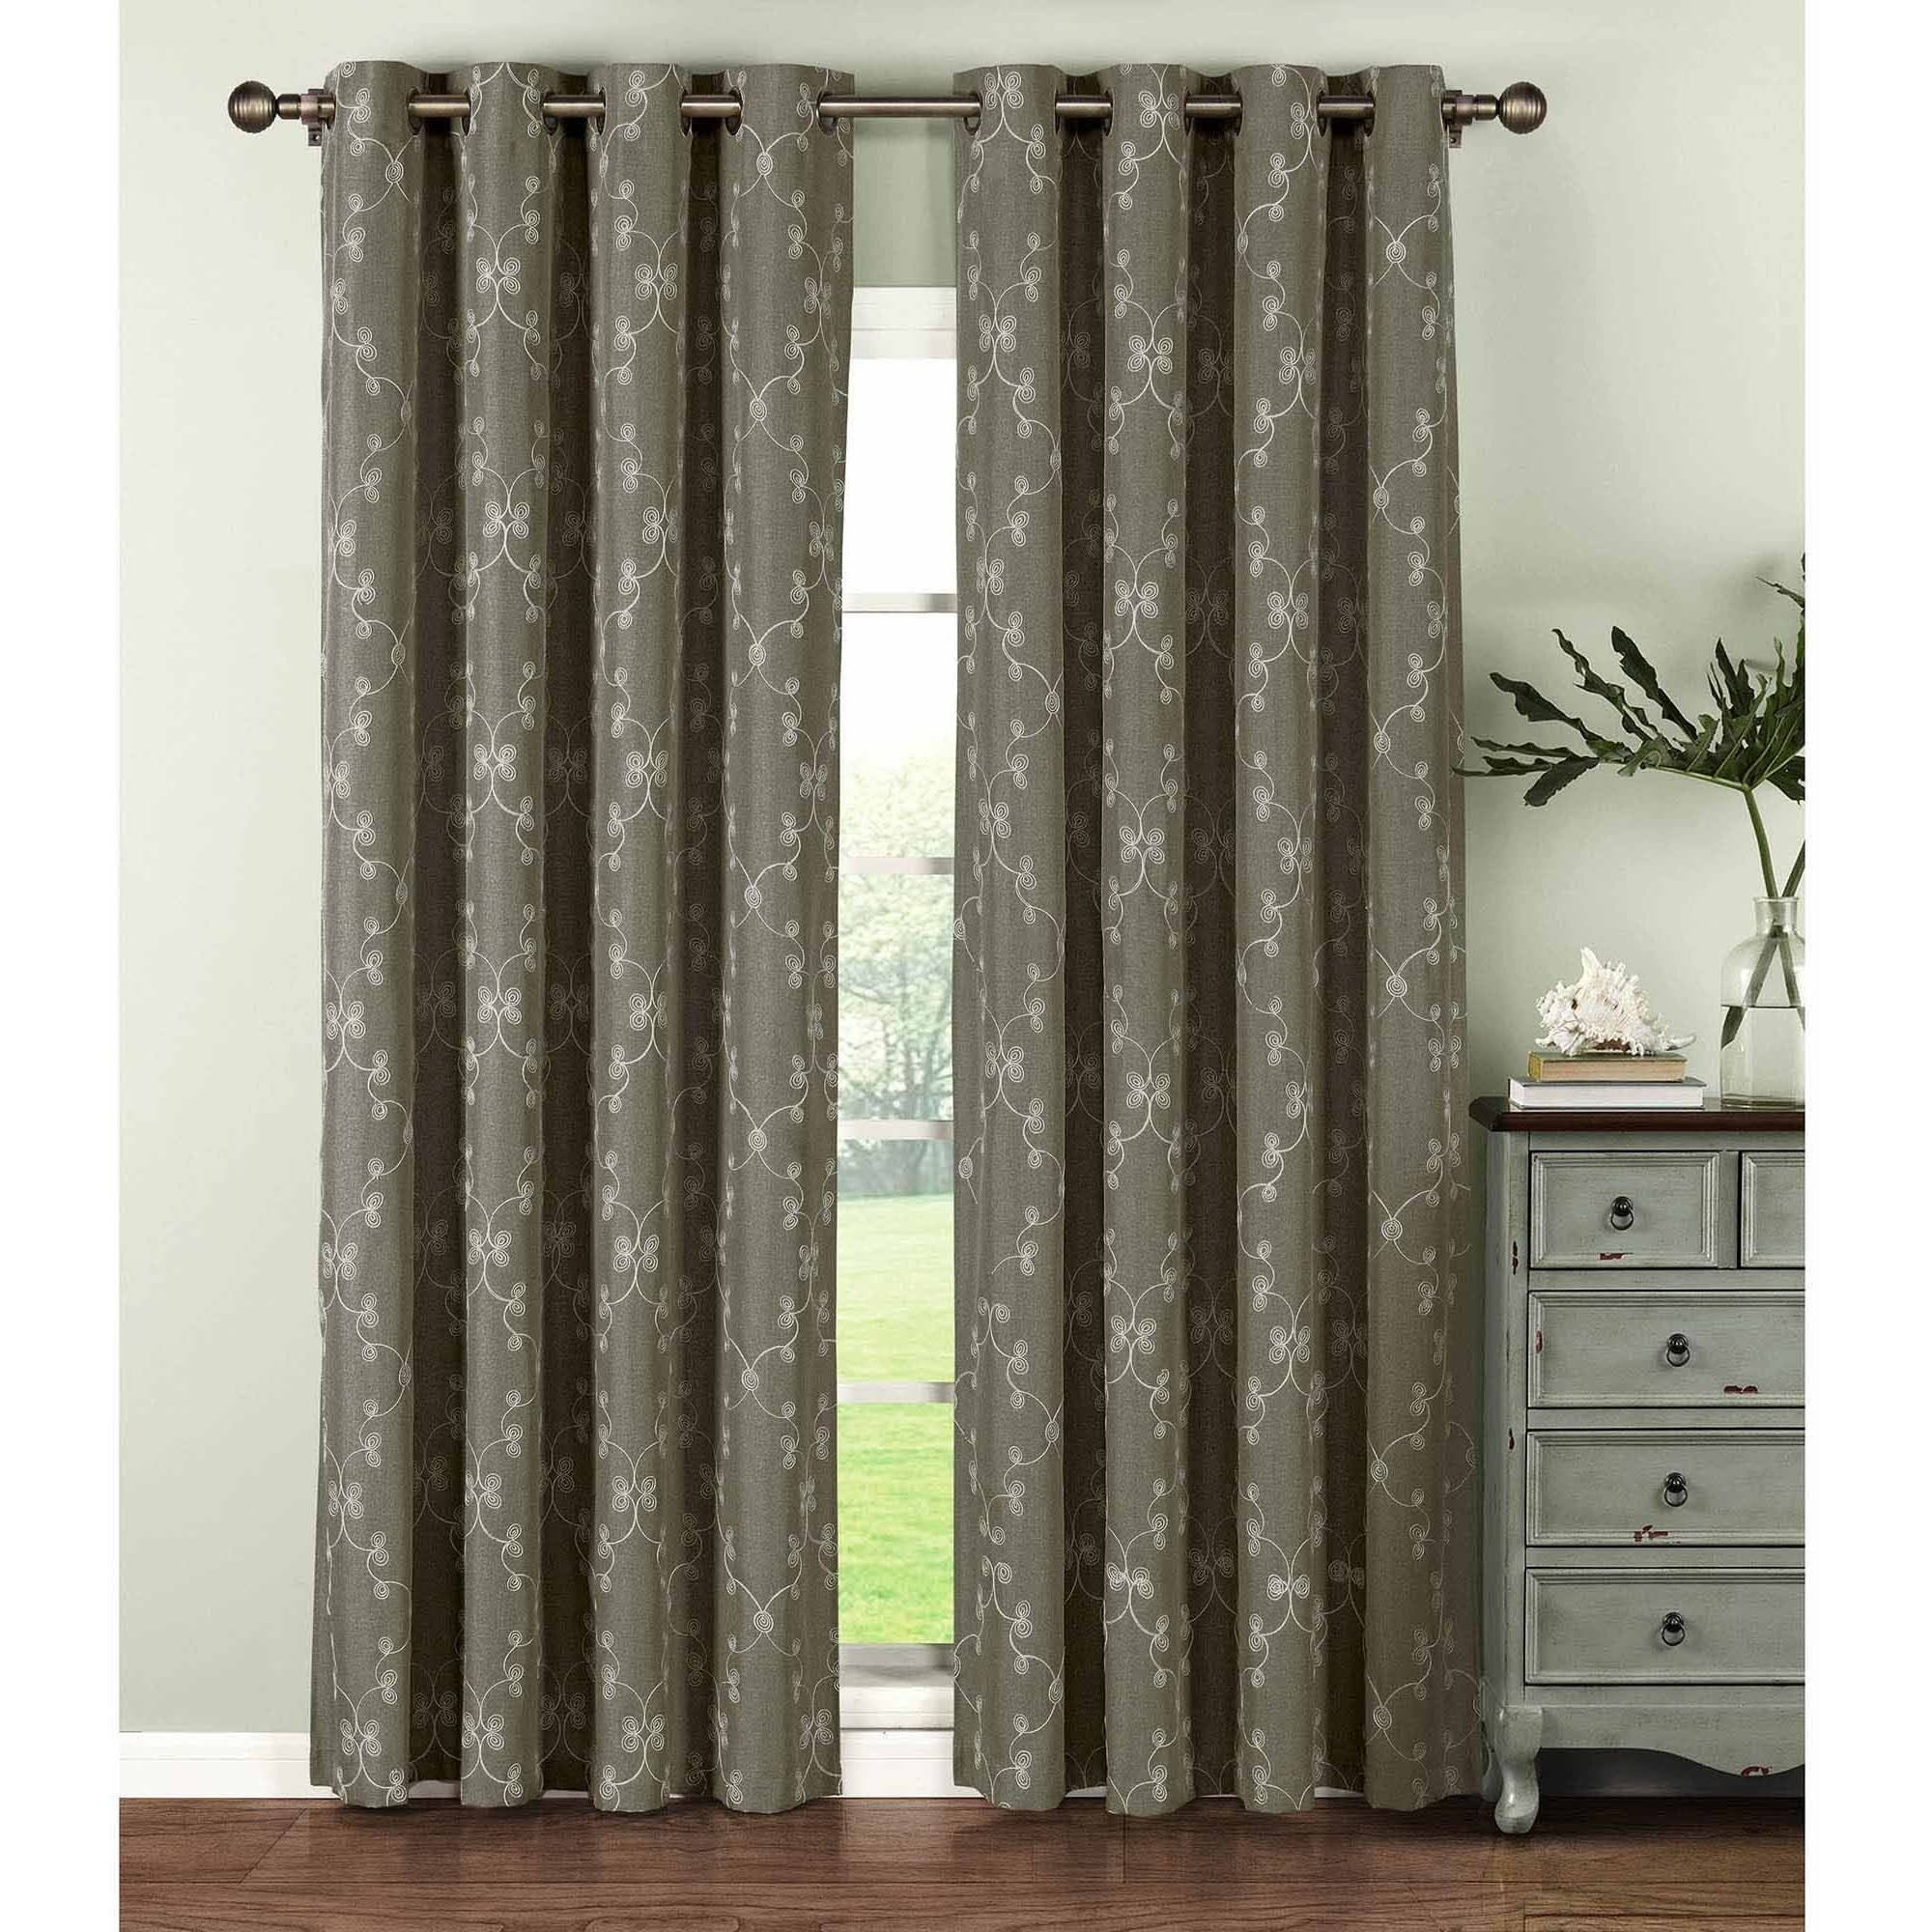 Geo Gate Embroidered Faux Linen Extra Wide Grommet Curtain Panel Pairs